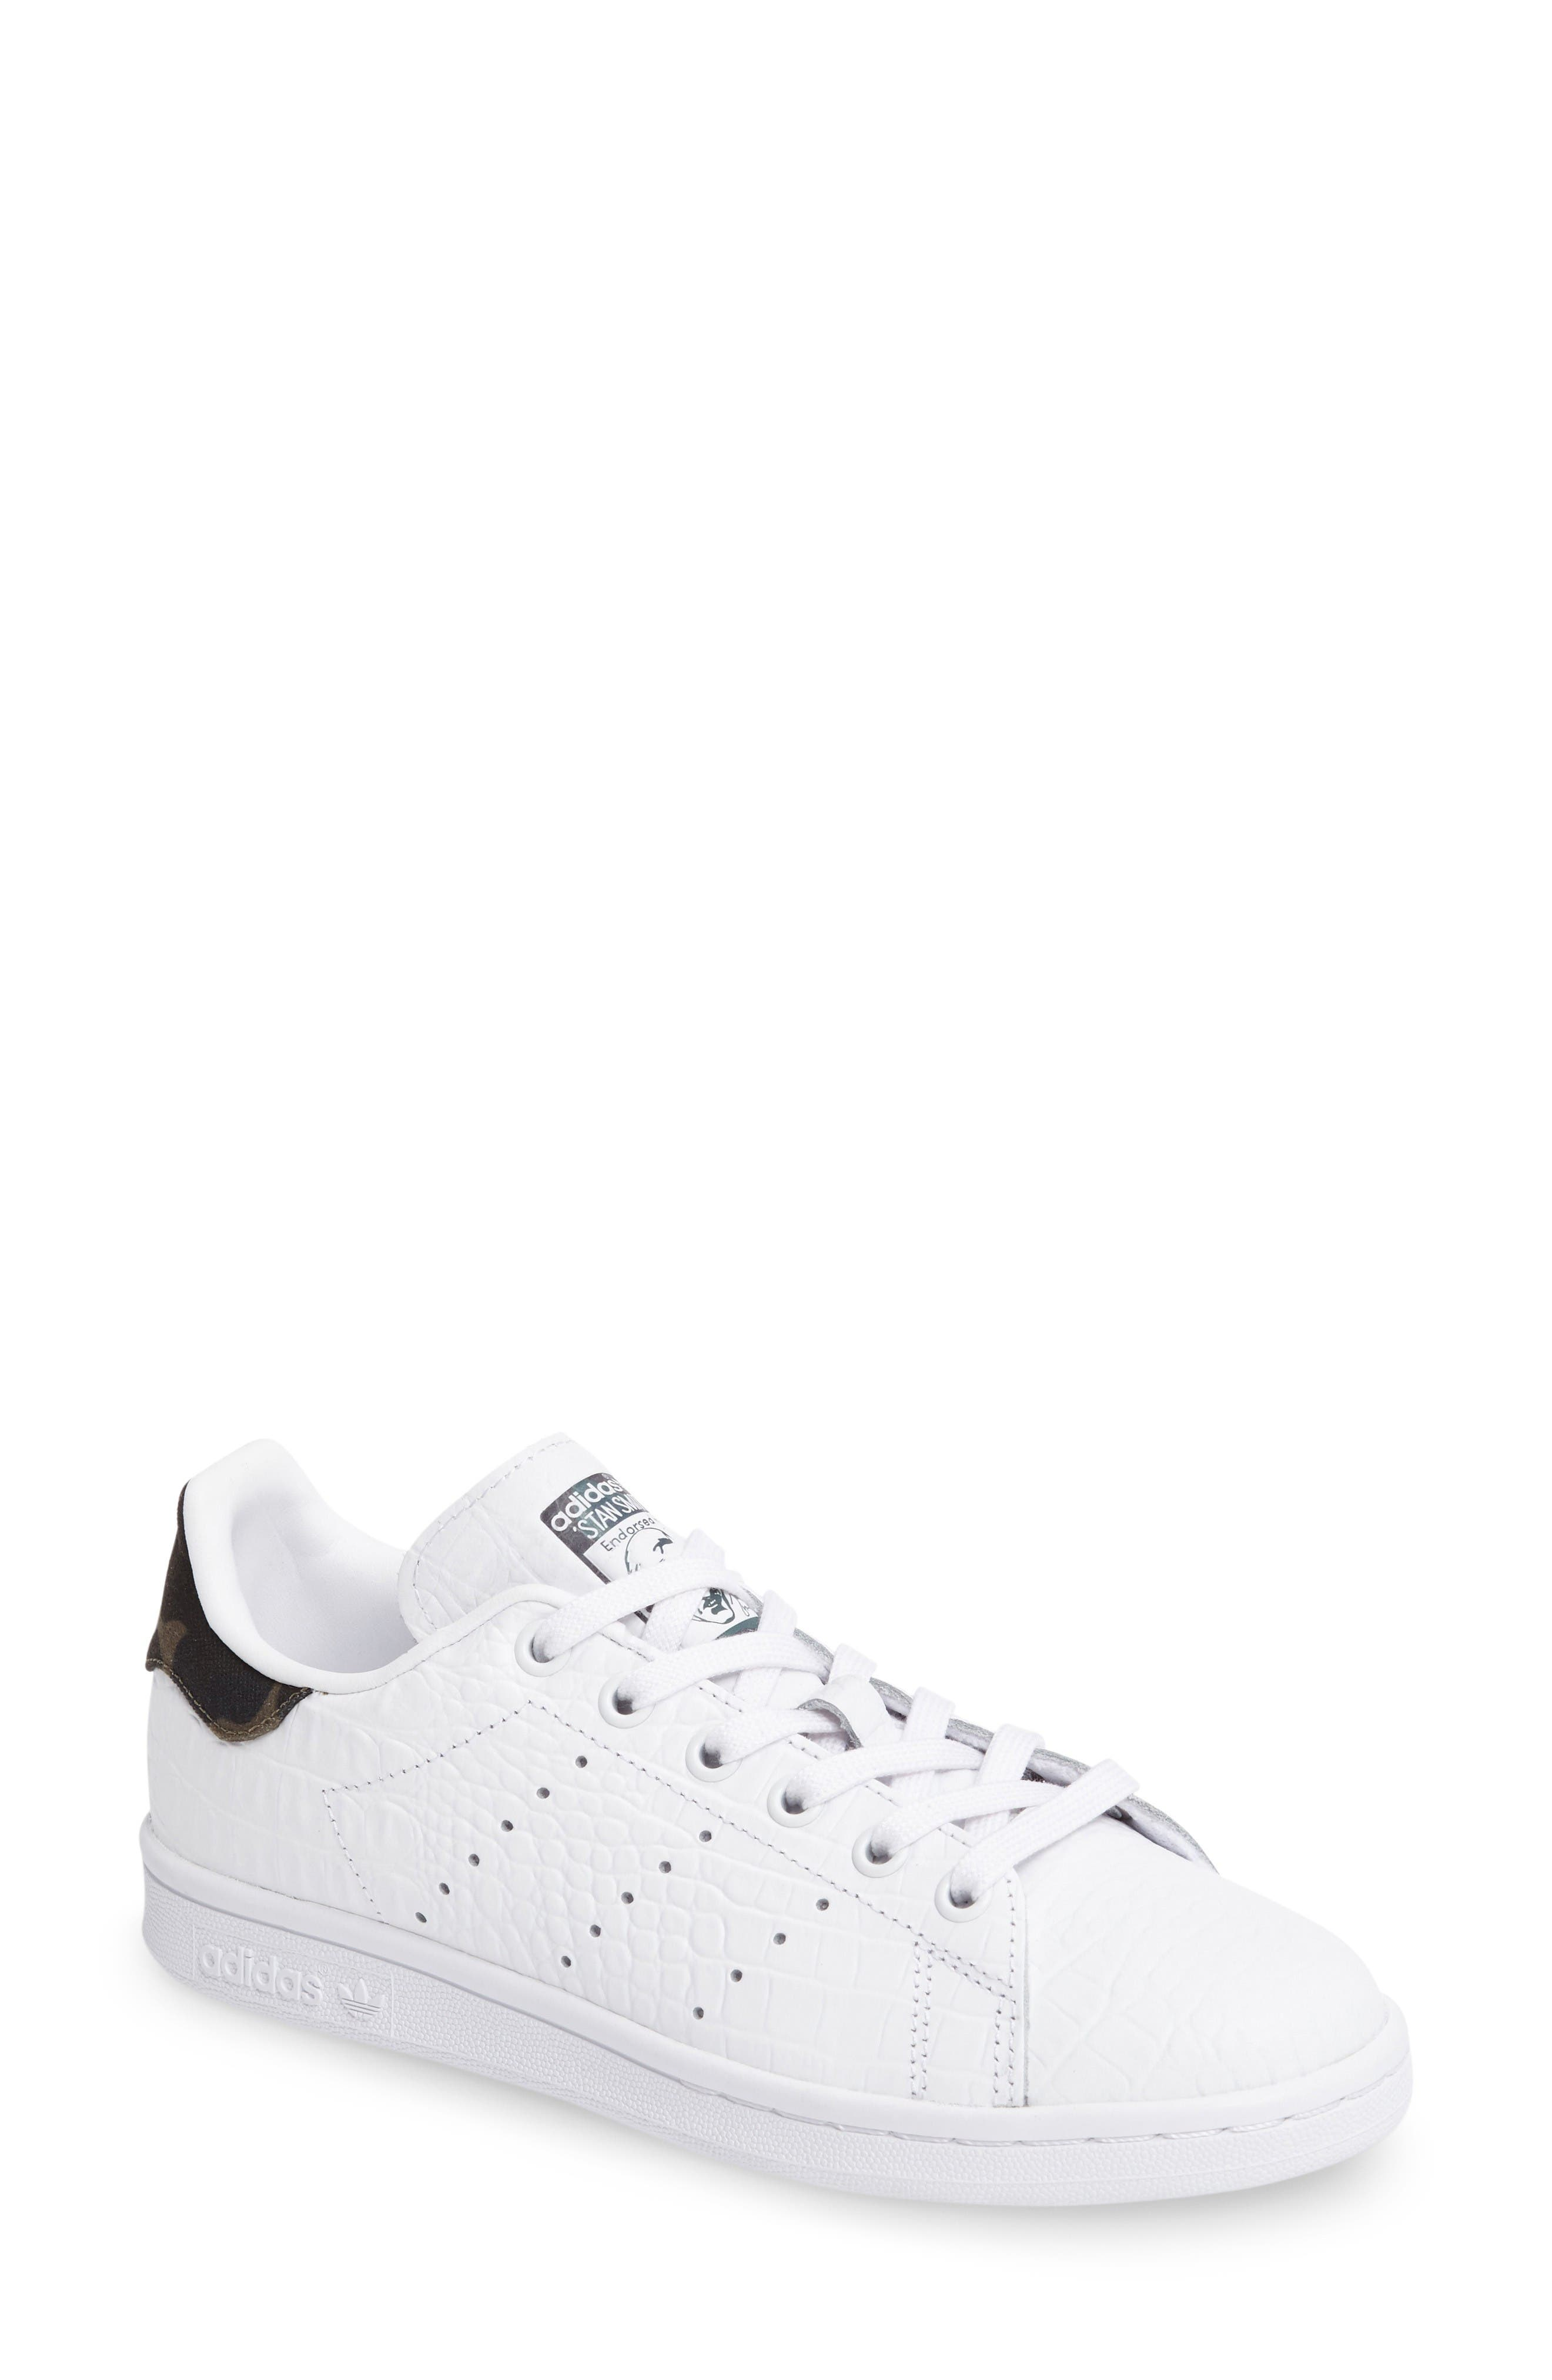 Alternate Image 1 Selected - adidas Stan Smith Sneaker (Women)